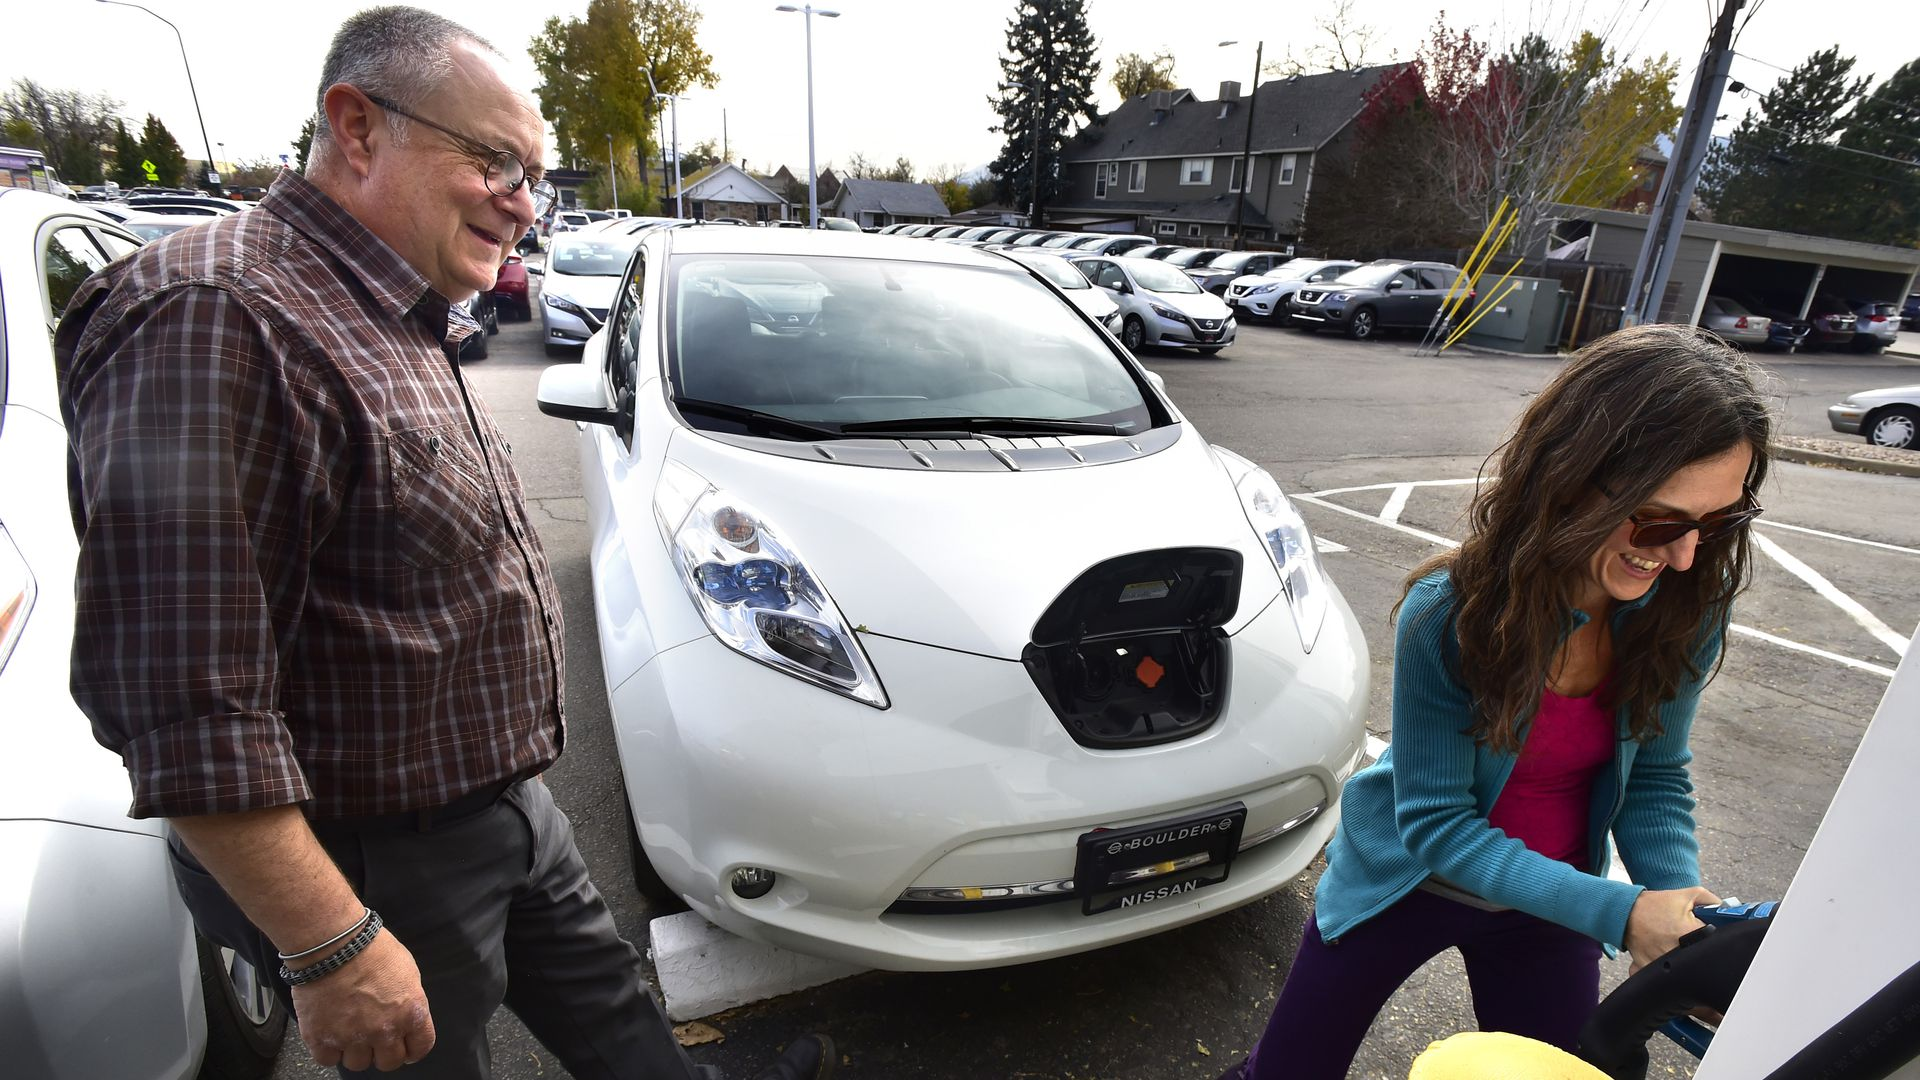 Shanna Solla laughs as she learns how to use the electric charging station with her new Nissan Leaf.